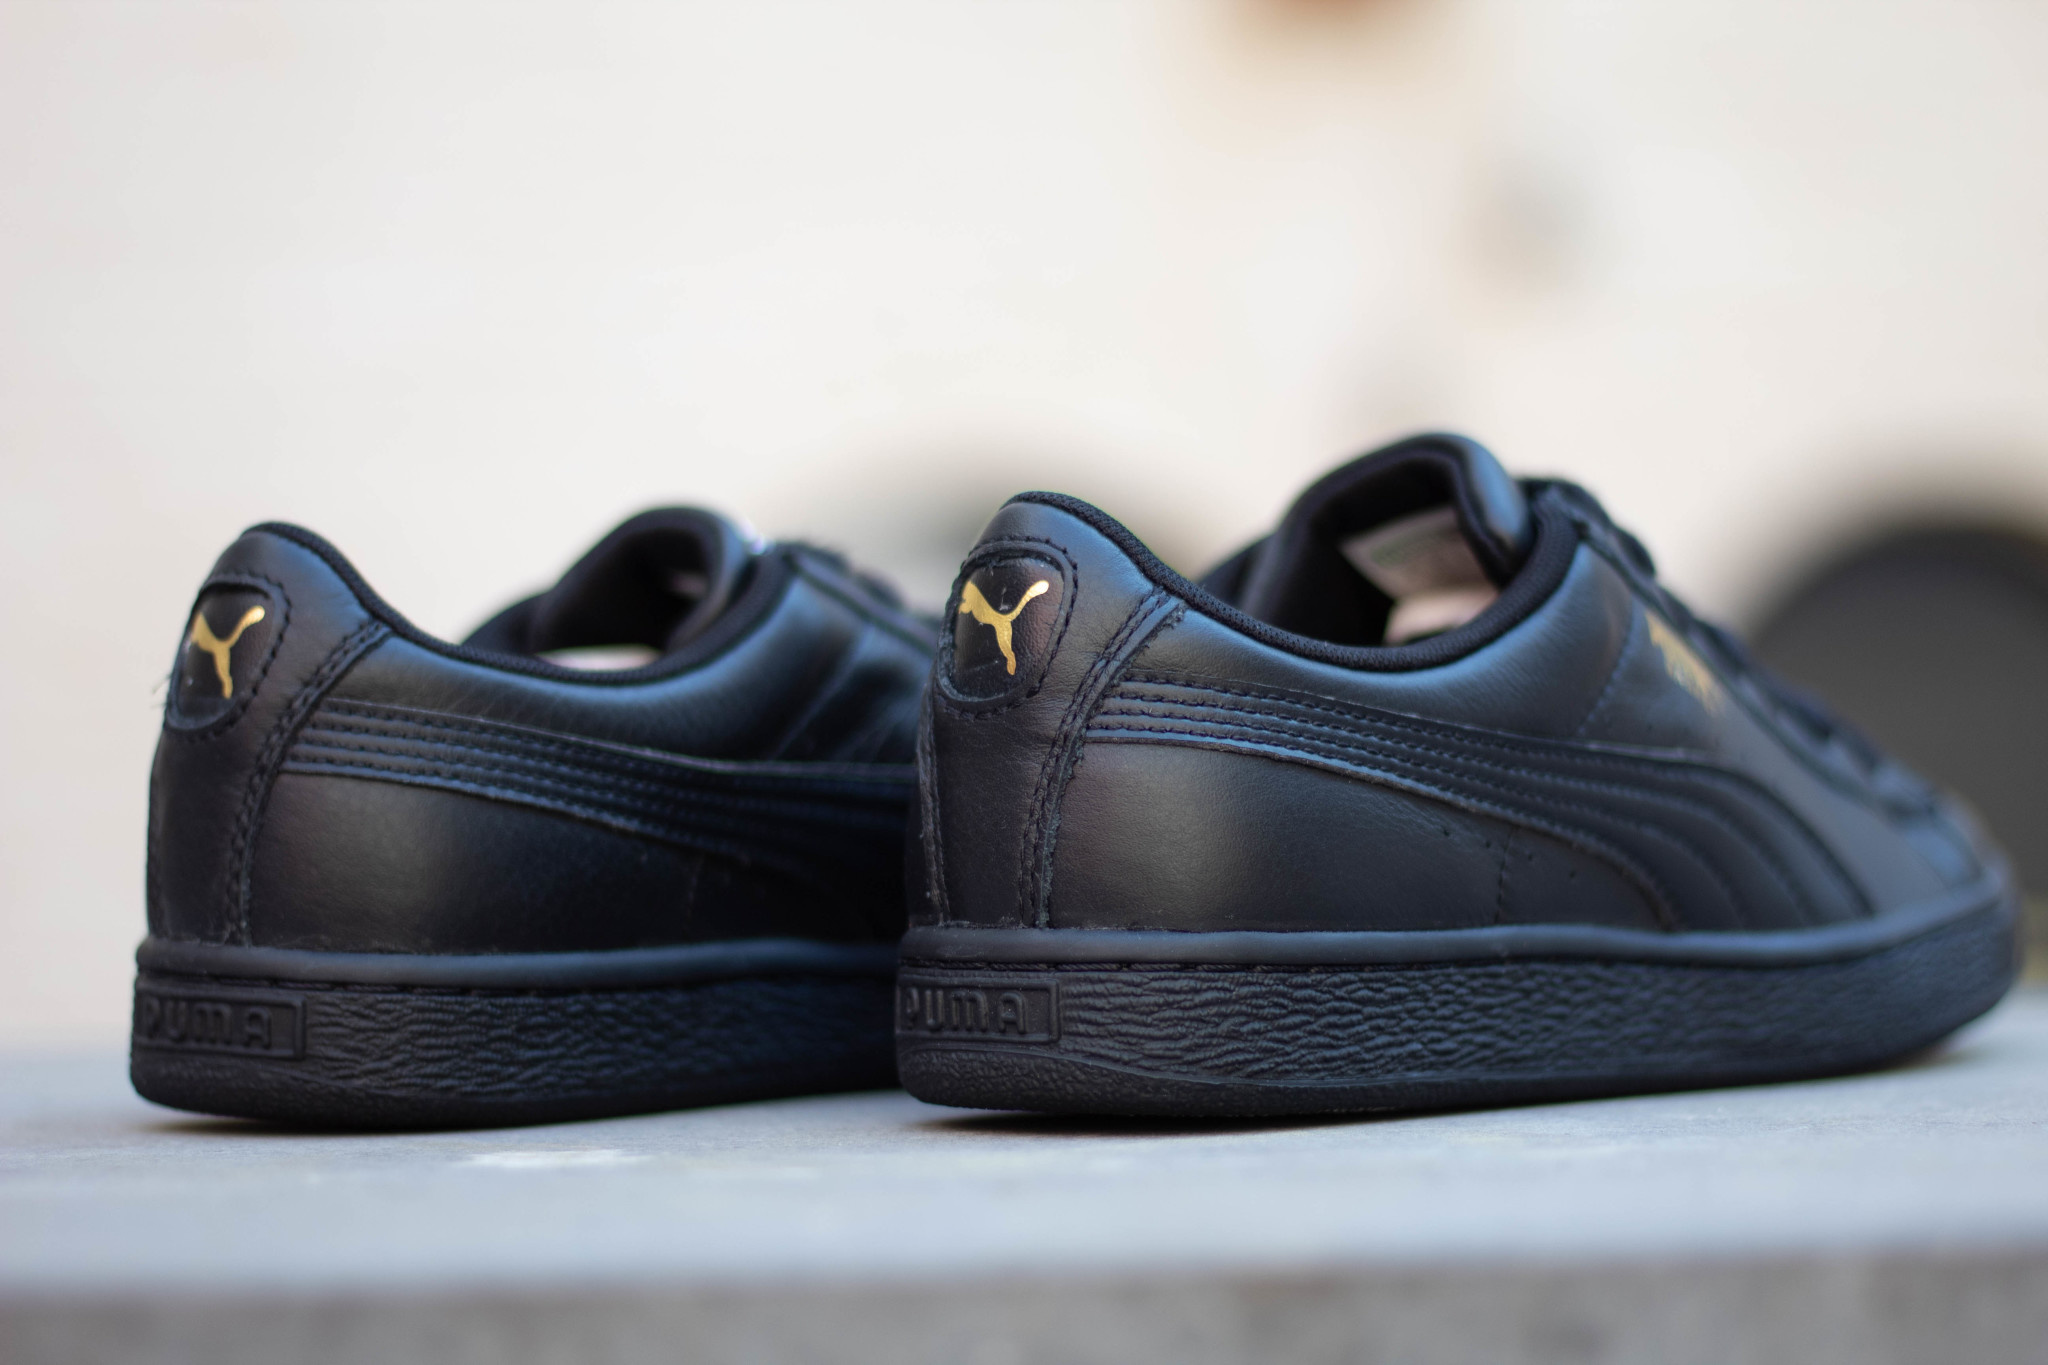 PUMA BASKET CLASSIC LFS Black-Team Gold